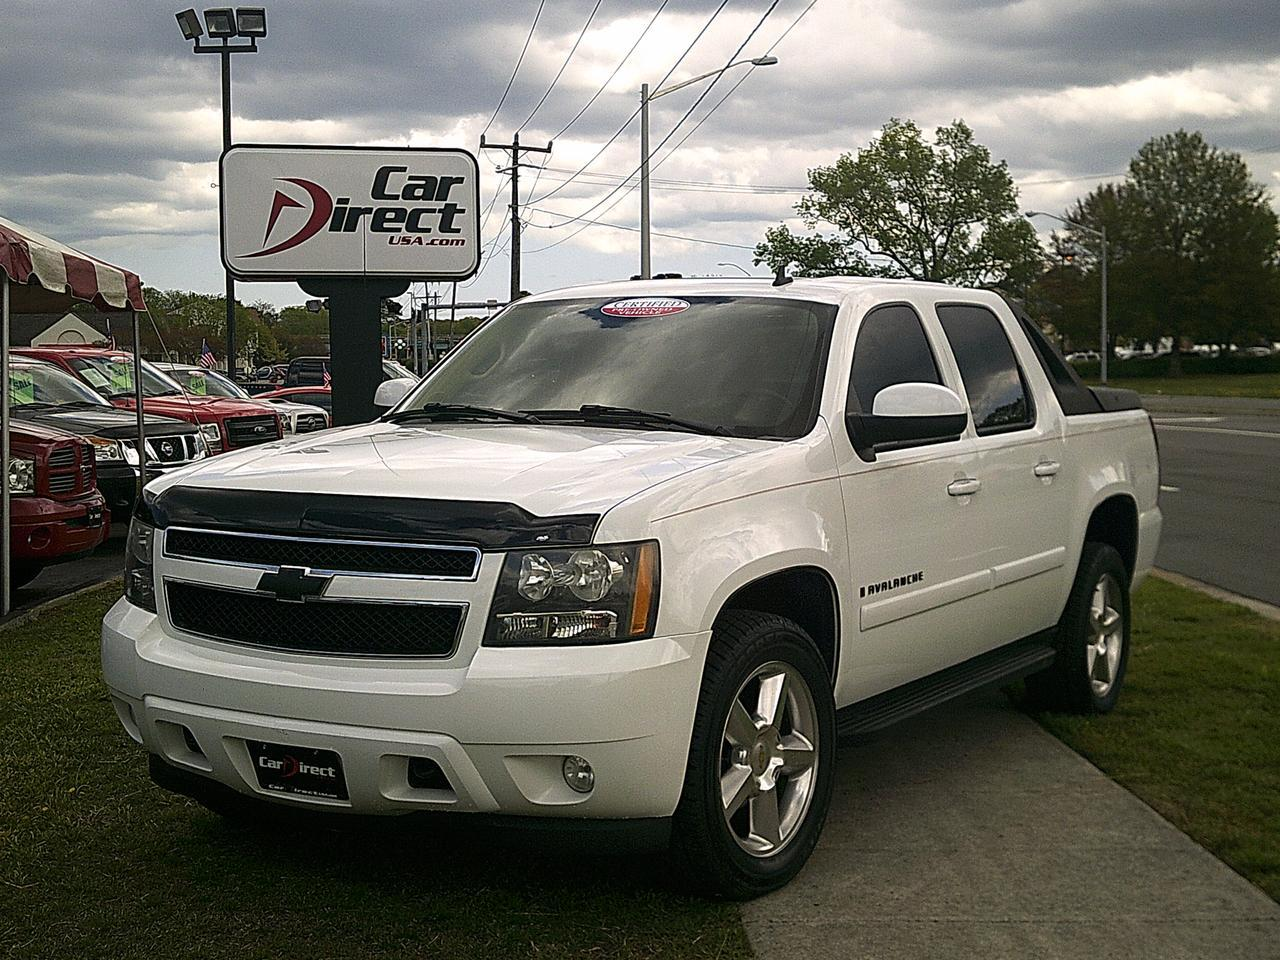 2007 chevrolet avalanche lt crew cab 4x4 autocheck. Black Bedroom Furniture Sets. Home Design Ideas